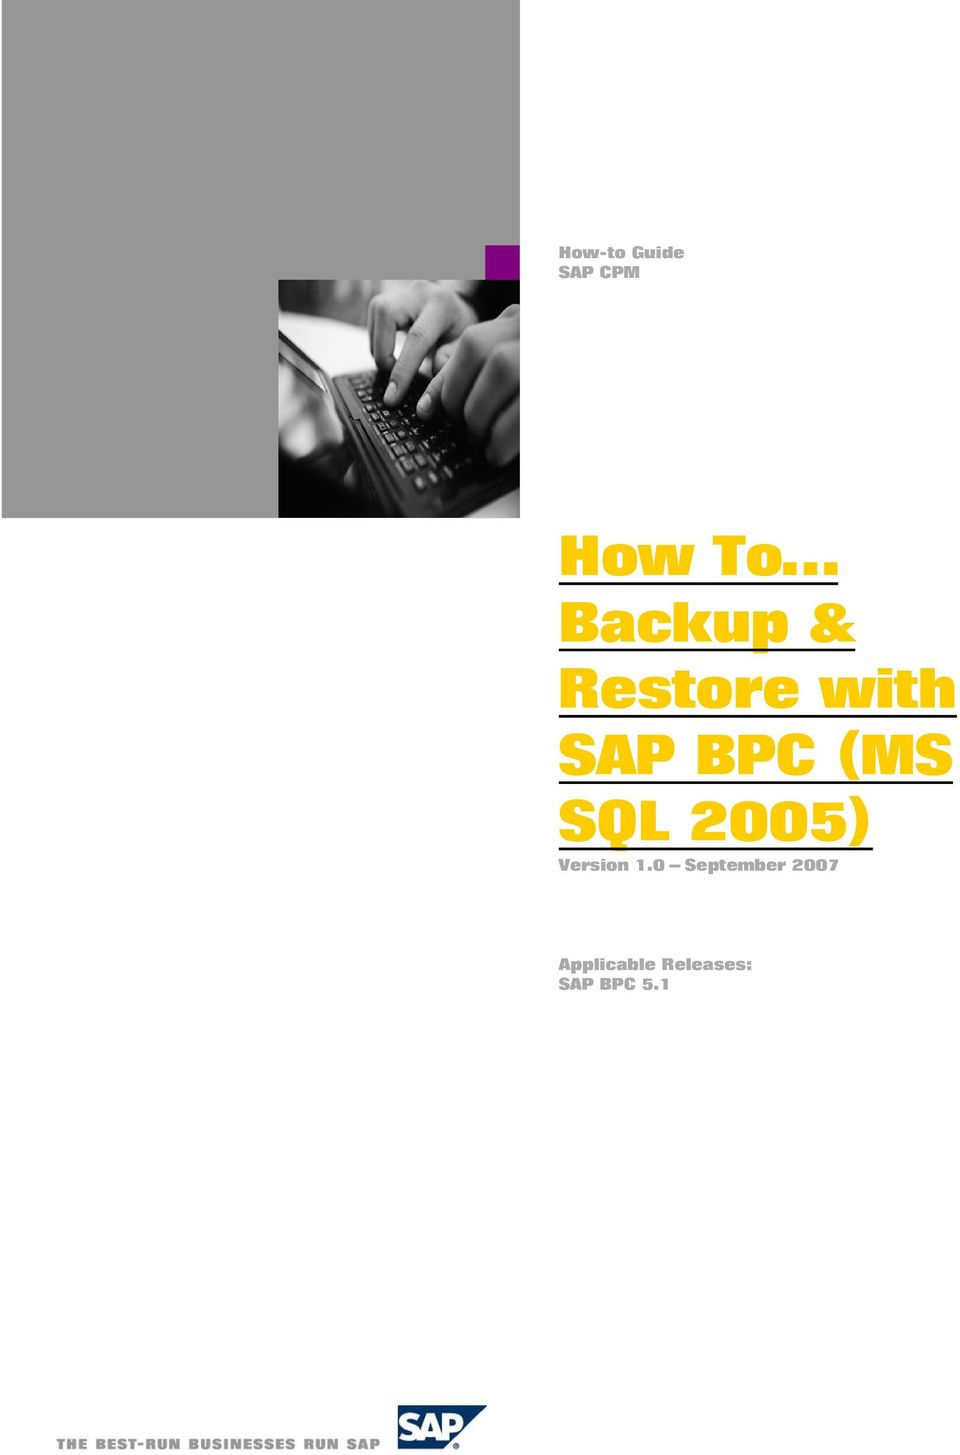 (MS SQL 2005) Version 1.